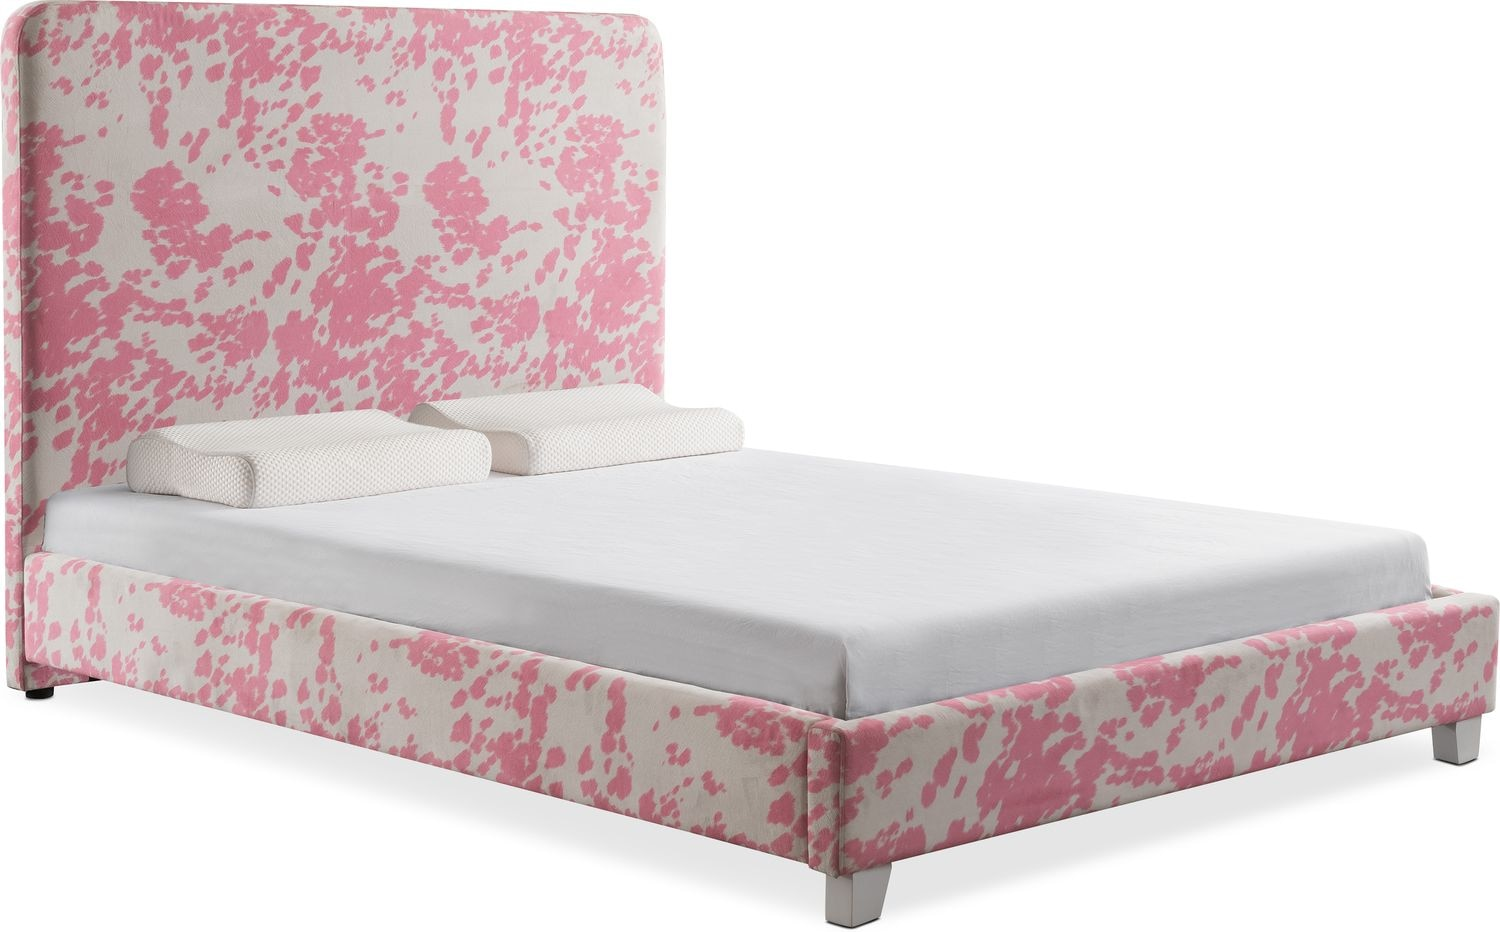 Jungle Upholstered Bed | Value City Furniture and Mattresses